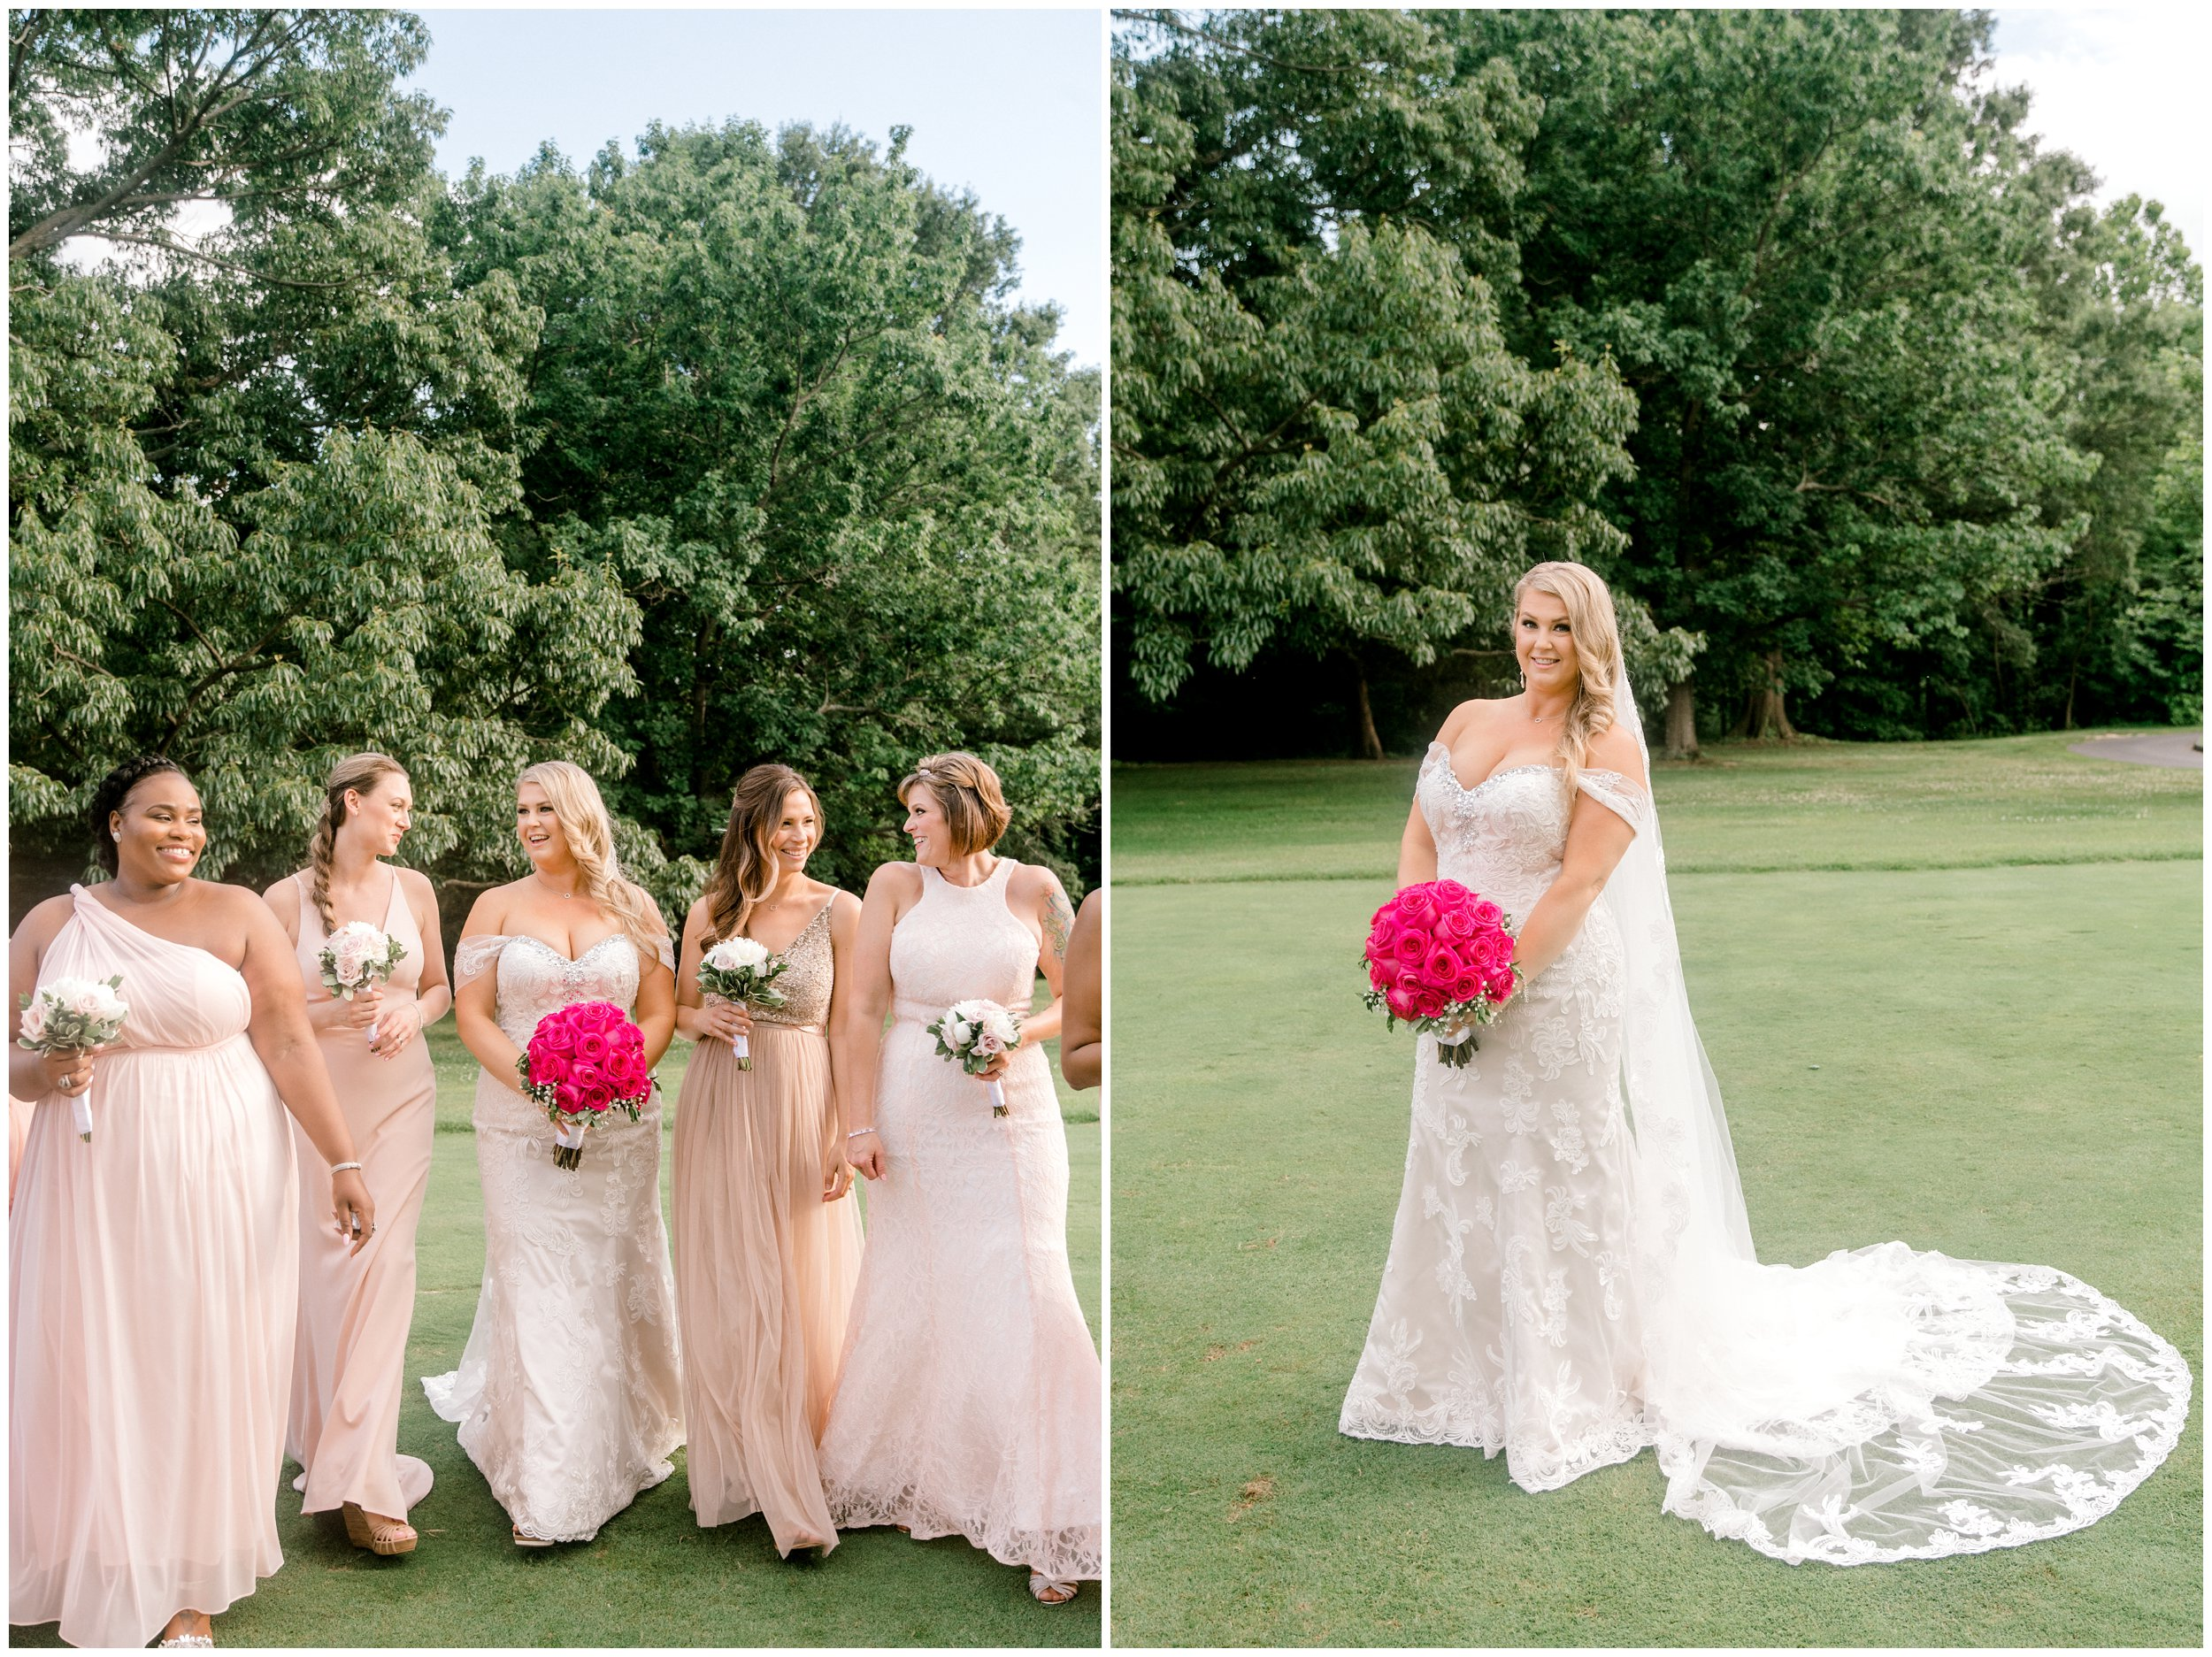 Bridal party, beautiful bridal portrait after ceremony